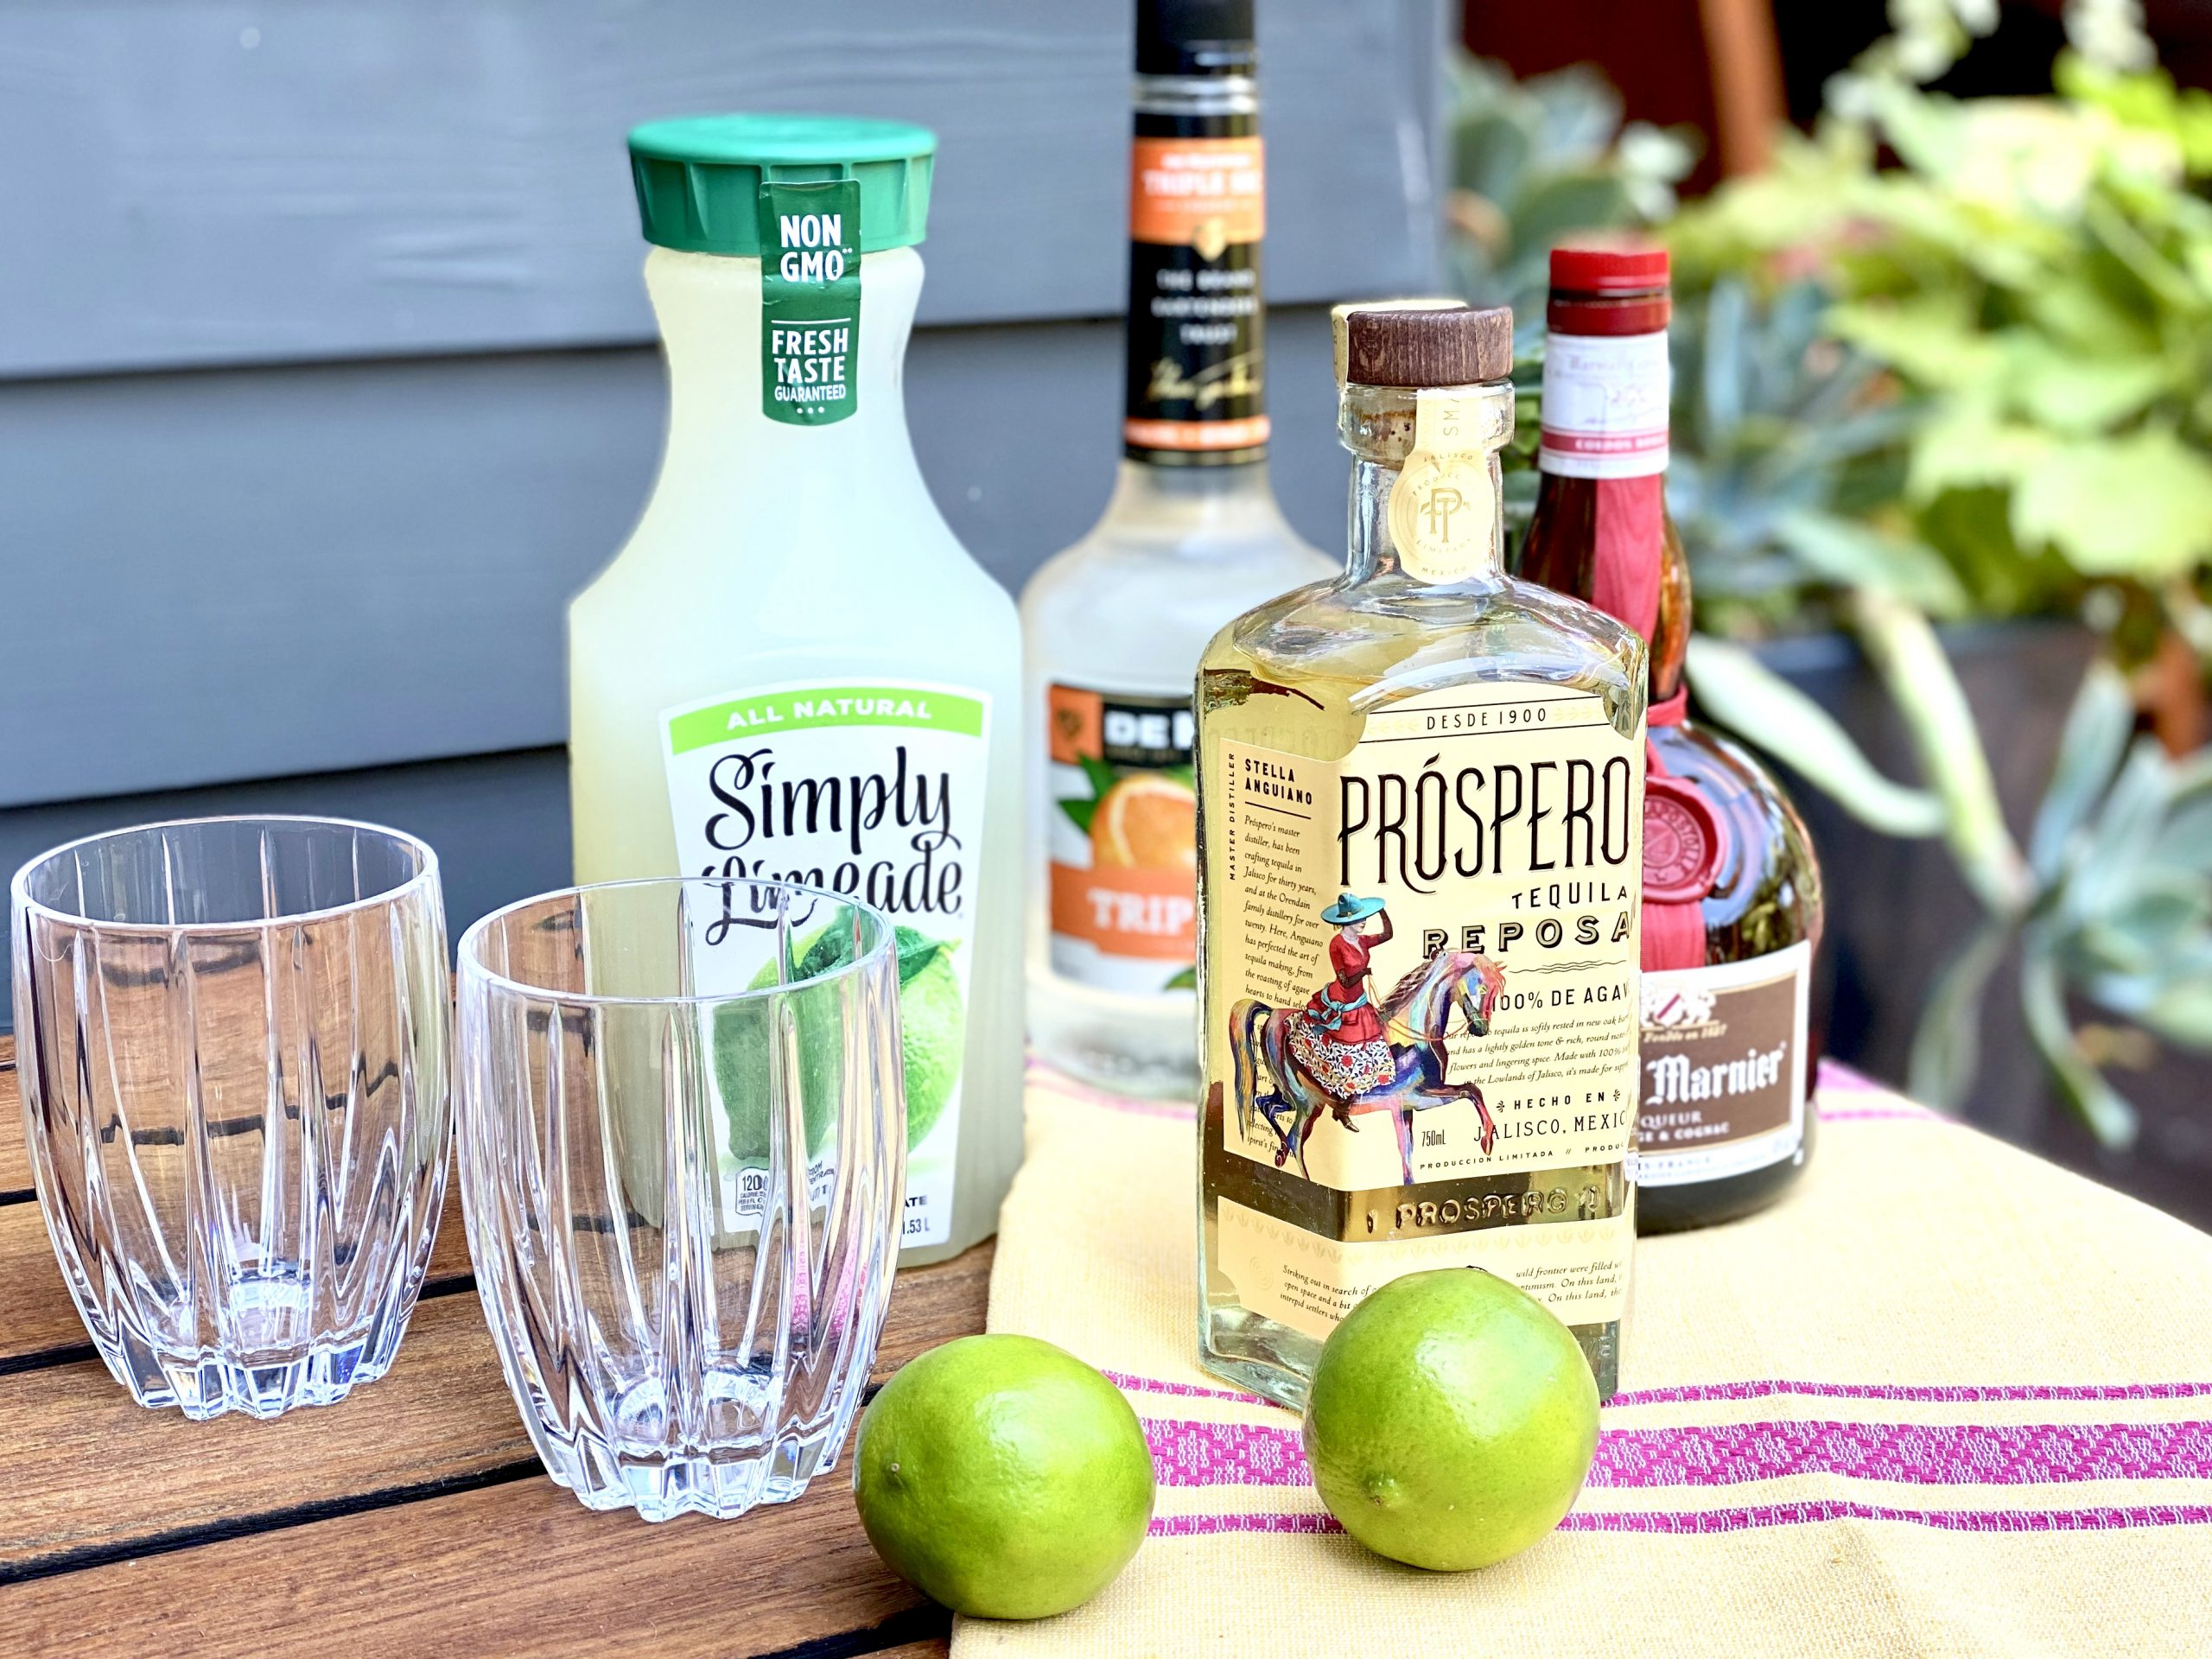 Prospero Tequila is the primary ingredient in a Margarita recipe including triple sec, Grand Marnier, Simply Limeade and fresh lime juice.